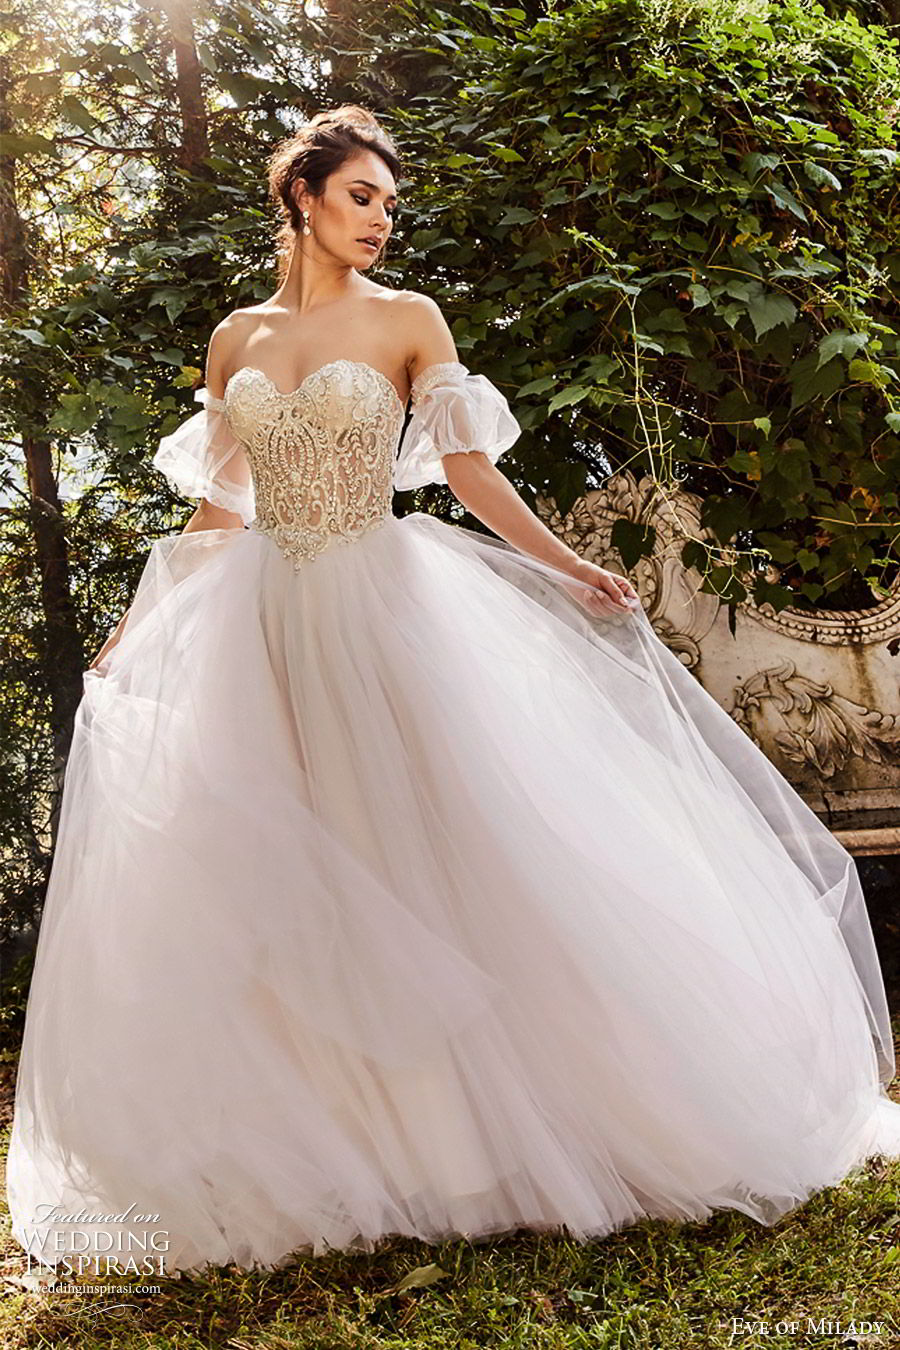 eve of milady fall 2018 bridal detached puff sleeves strapless sweetheart embellished bodice ball gown wedding dress romantic princess blush color (4) mv